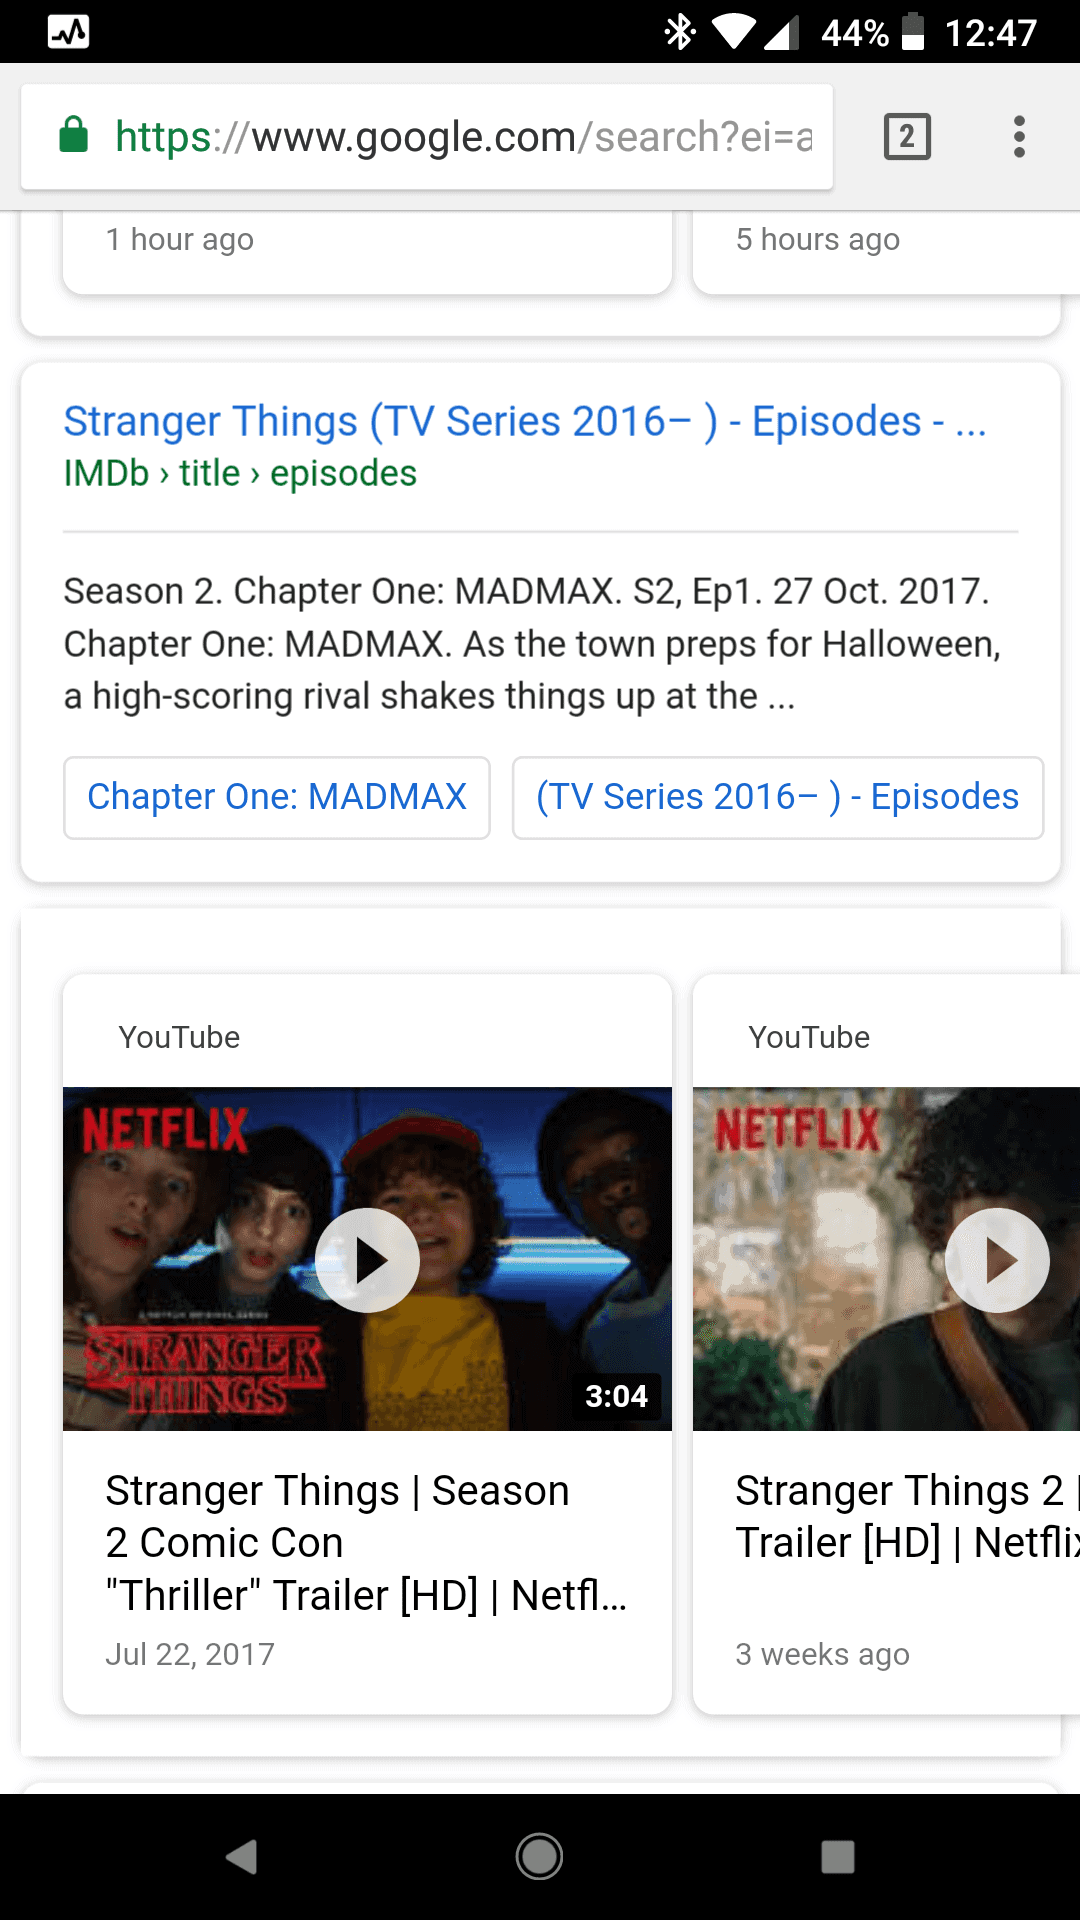 Google Search Mobile Rounded Corners 1